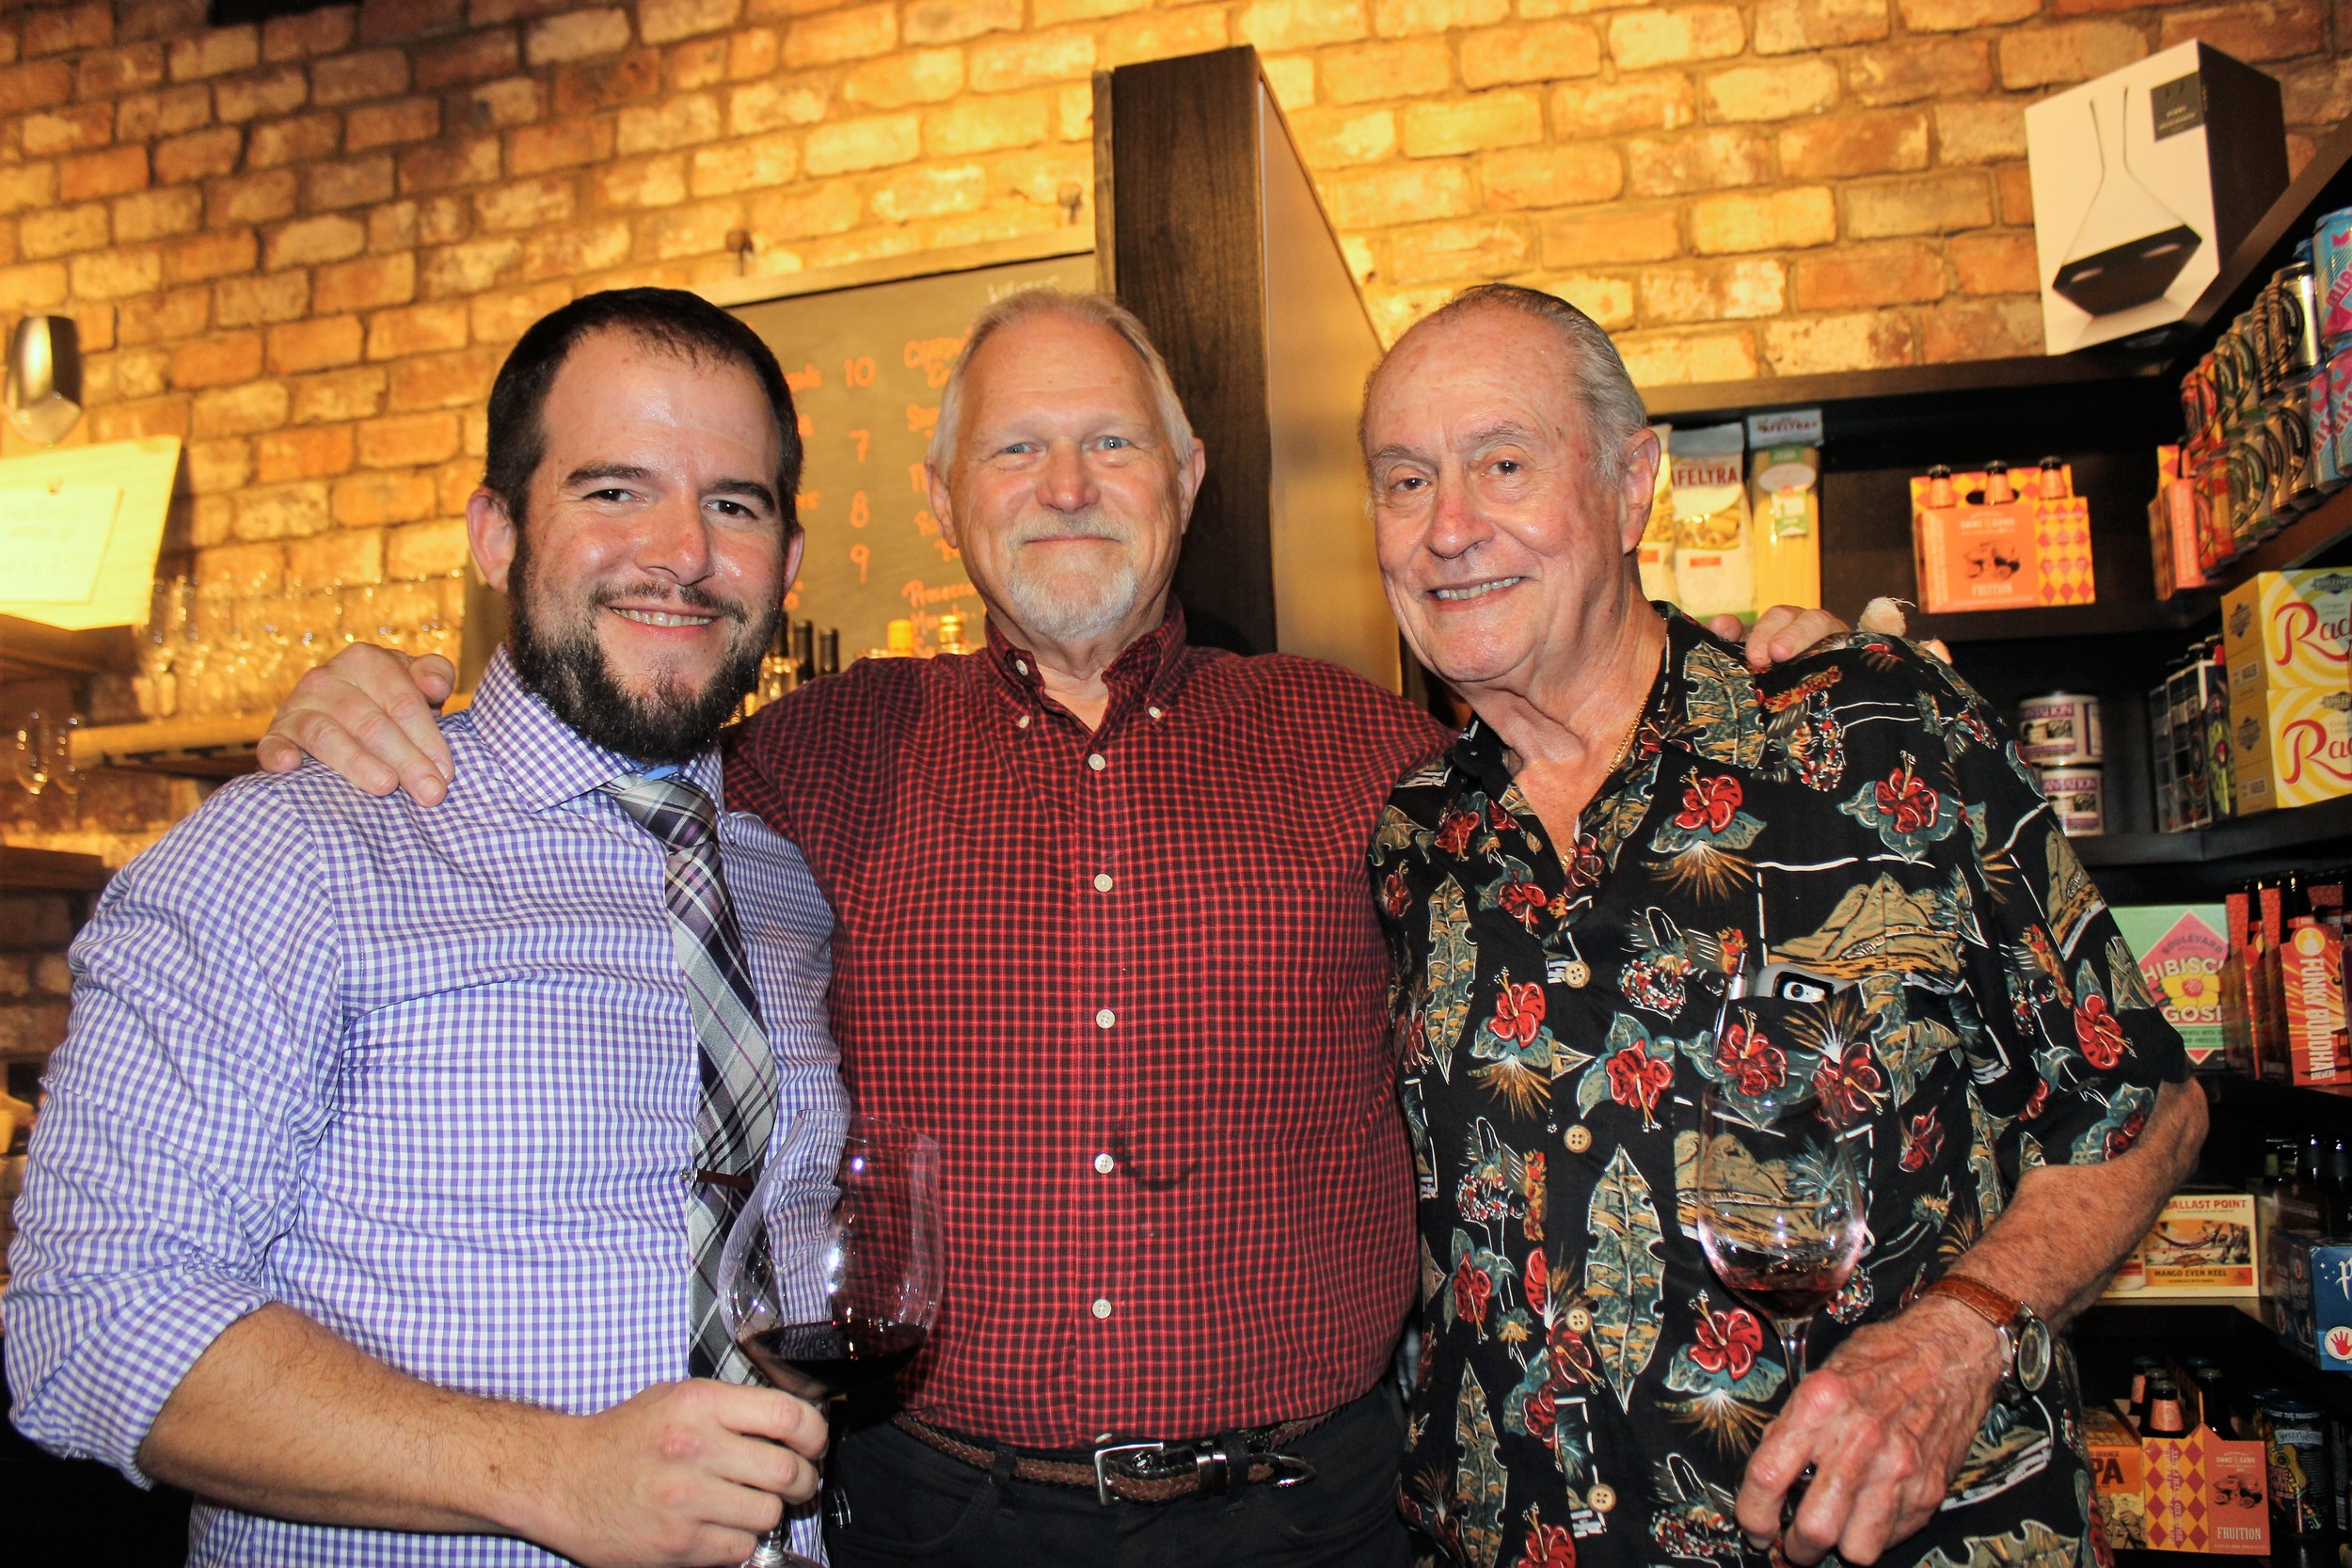 The Legends of Wine Steve Lourie Allen Horne and Manuel Rey